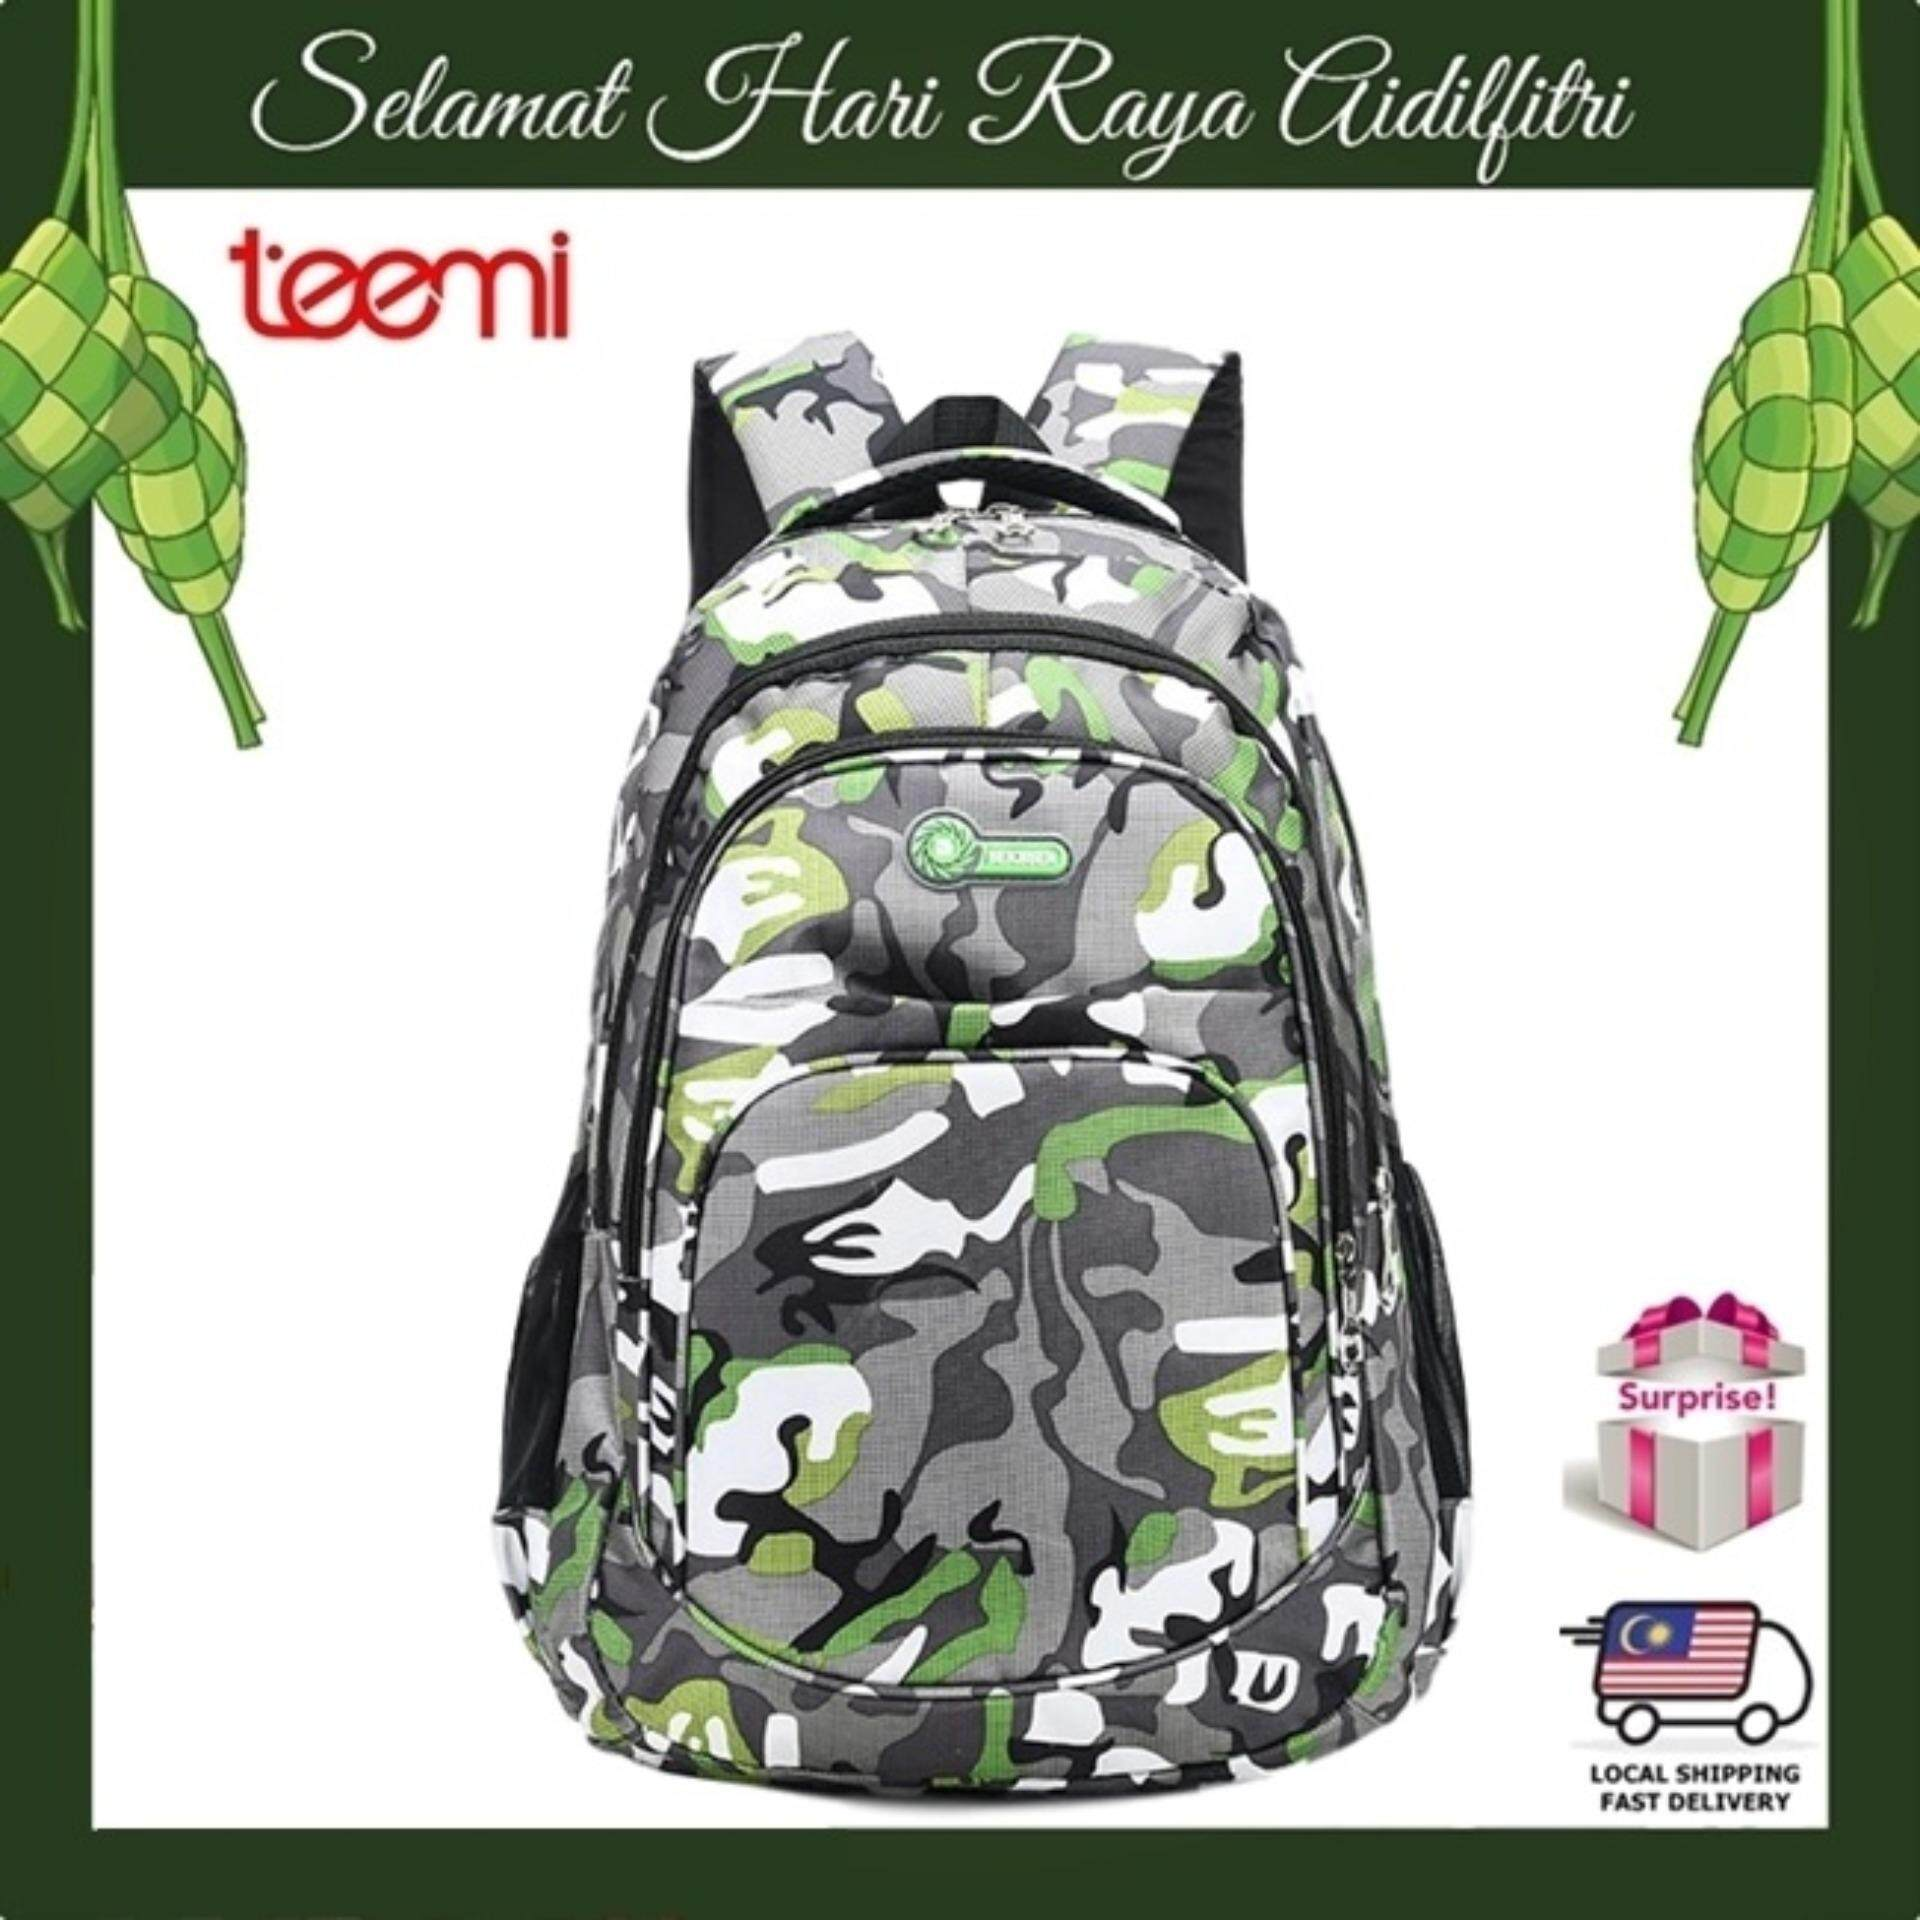 TEEMI Unisex Backpack Modern Army Camouflage Forest Stripe Printing Water Resistant Nylon Sports Laptop Travel Outdoor Leisure Teenager College Bag - Green